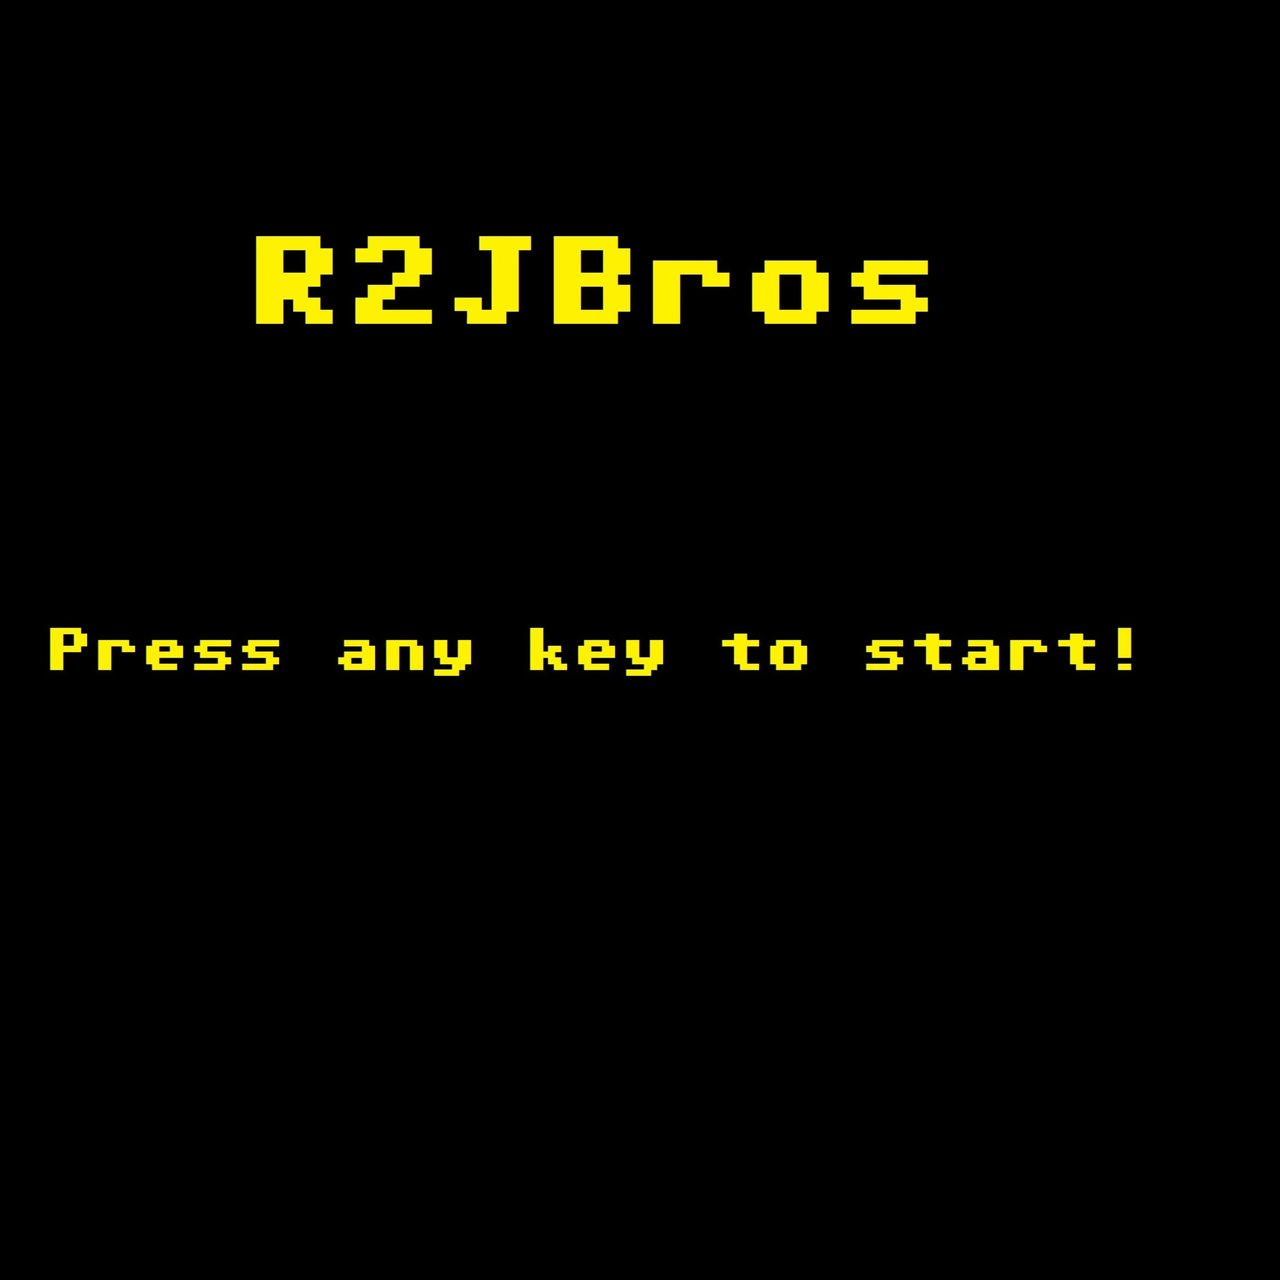 Press Any Key to Start!